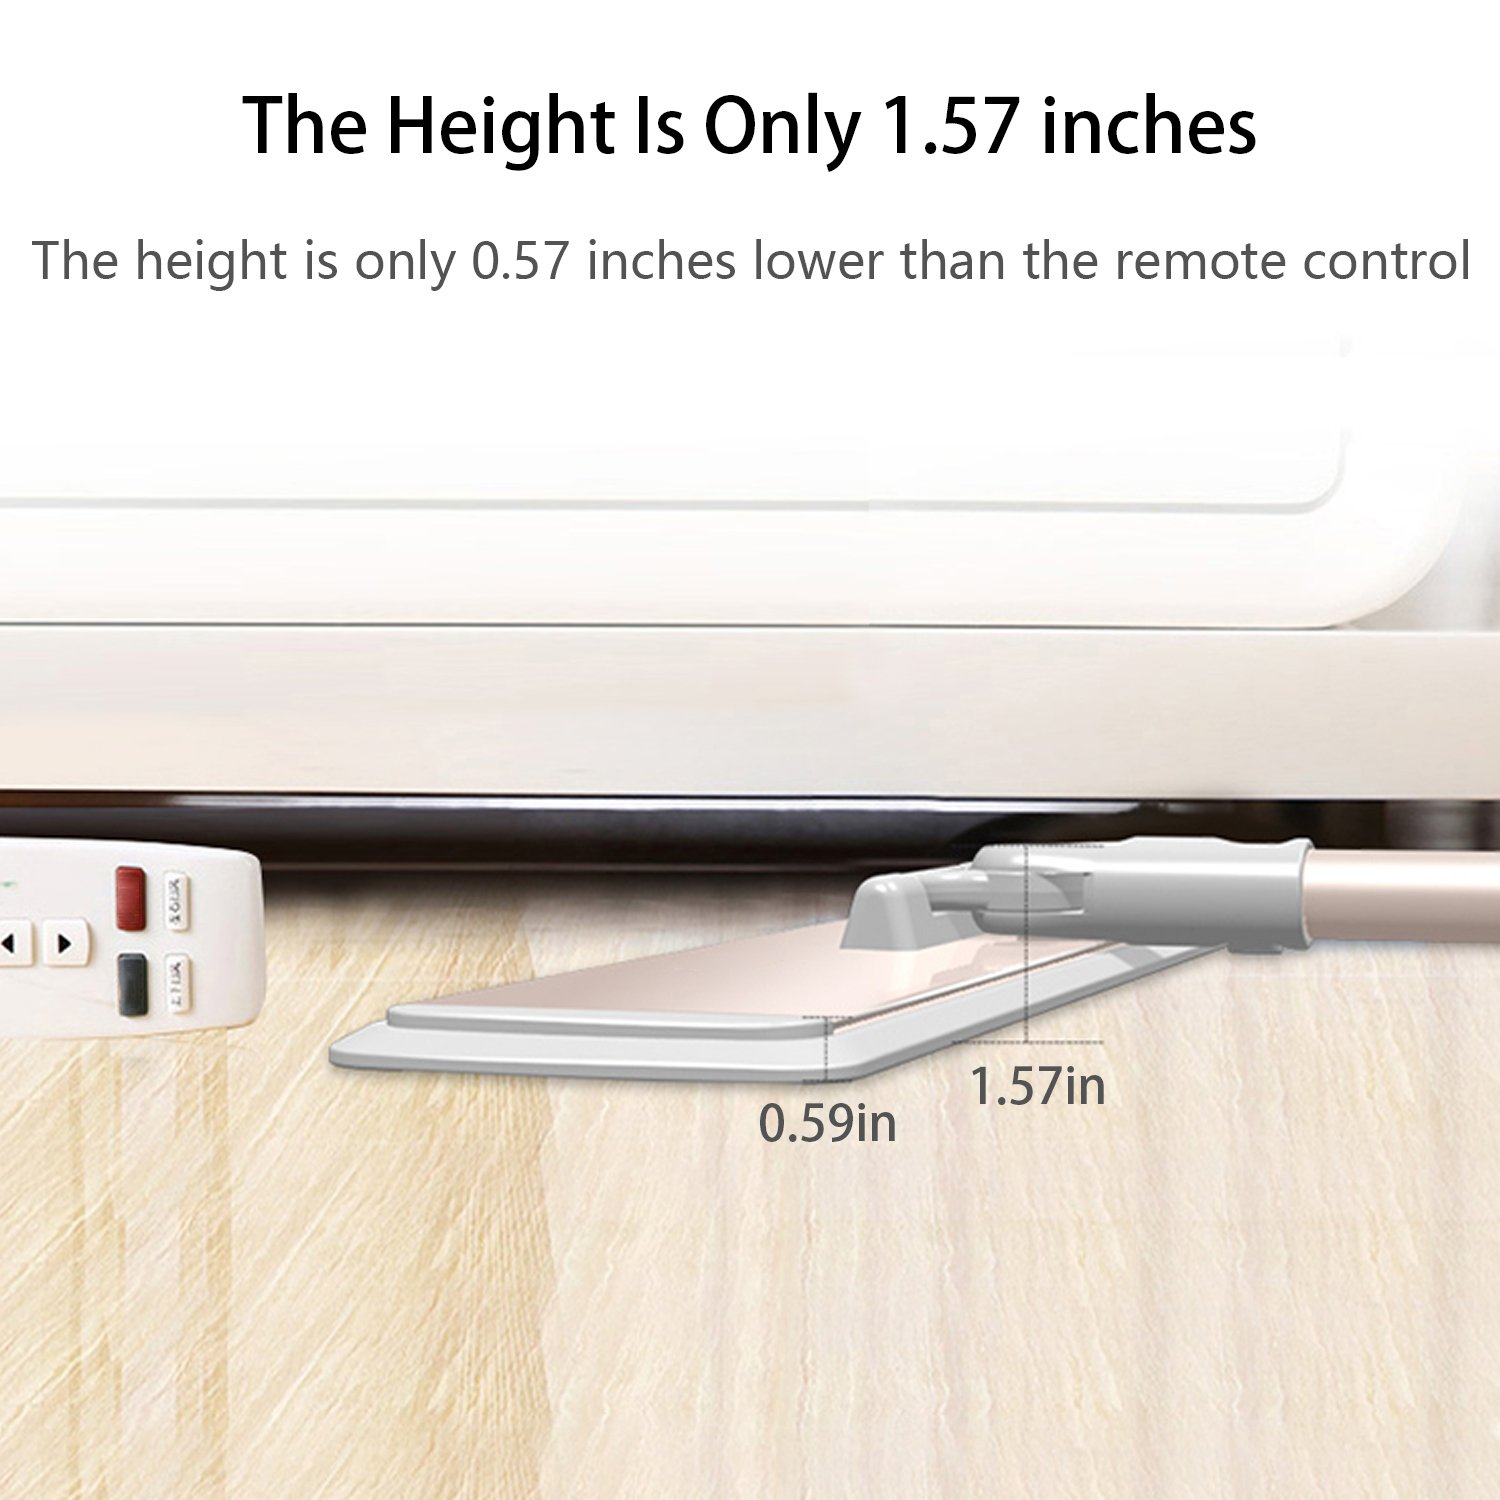 FRMARCH 18'' Professional Microfiber Mop 360 Flat Mop for Floor Cleaning, Wet and Dry Floor Cleaning Mops for Hardwood, Wood, Tile, Walls,Commercial Grade Metal Handle/Head,All in 3 mop pad by FRMARCH (Image #4)